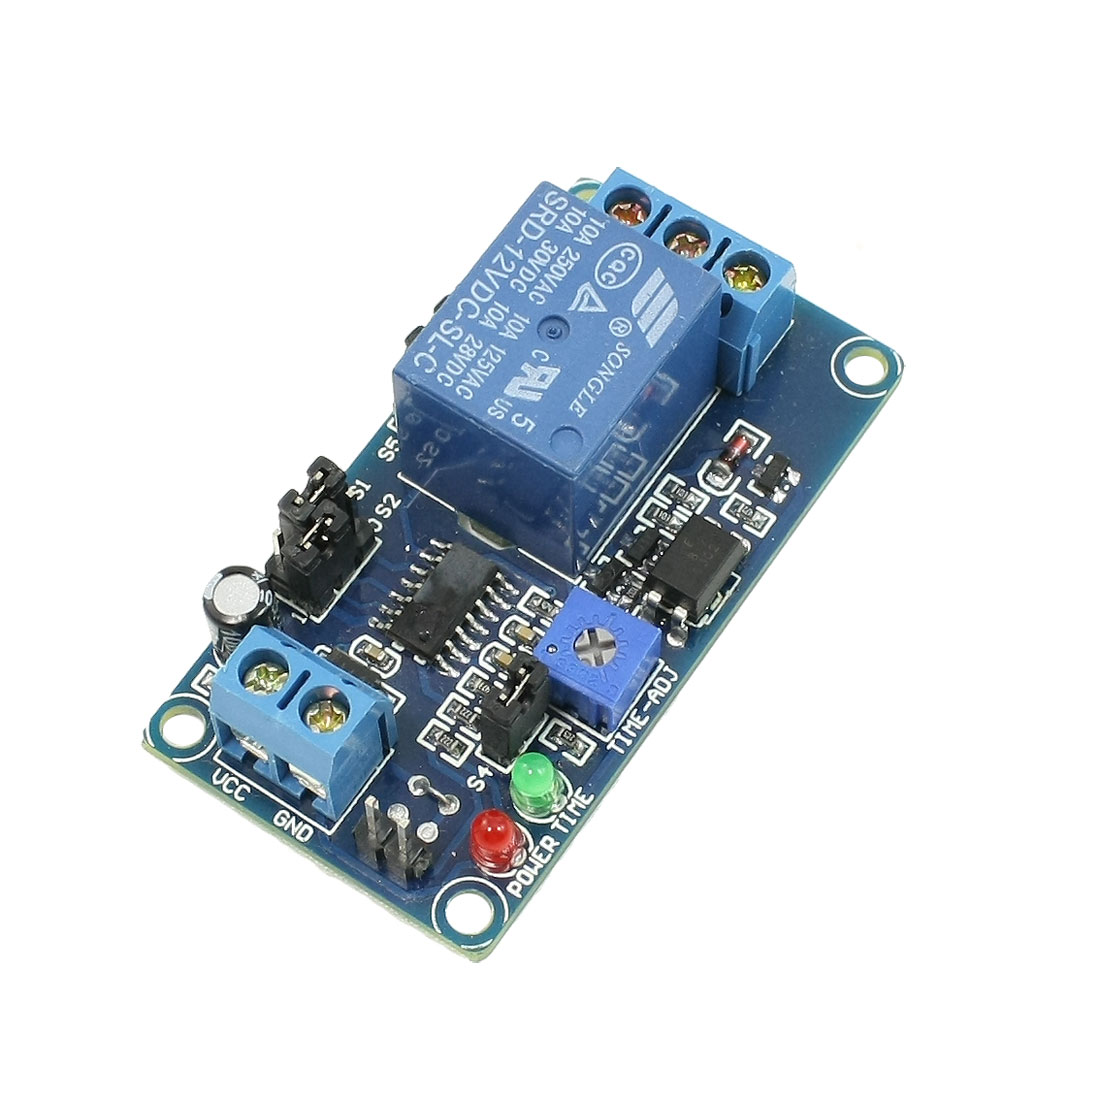 DC 12V Power Supply Adjustable Trigger Delay Time Relay Module